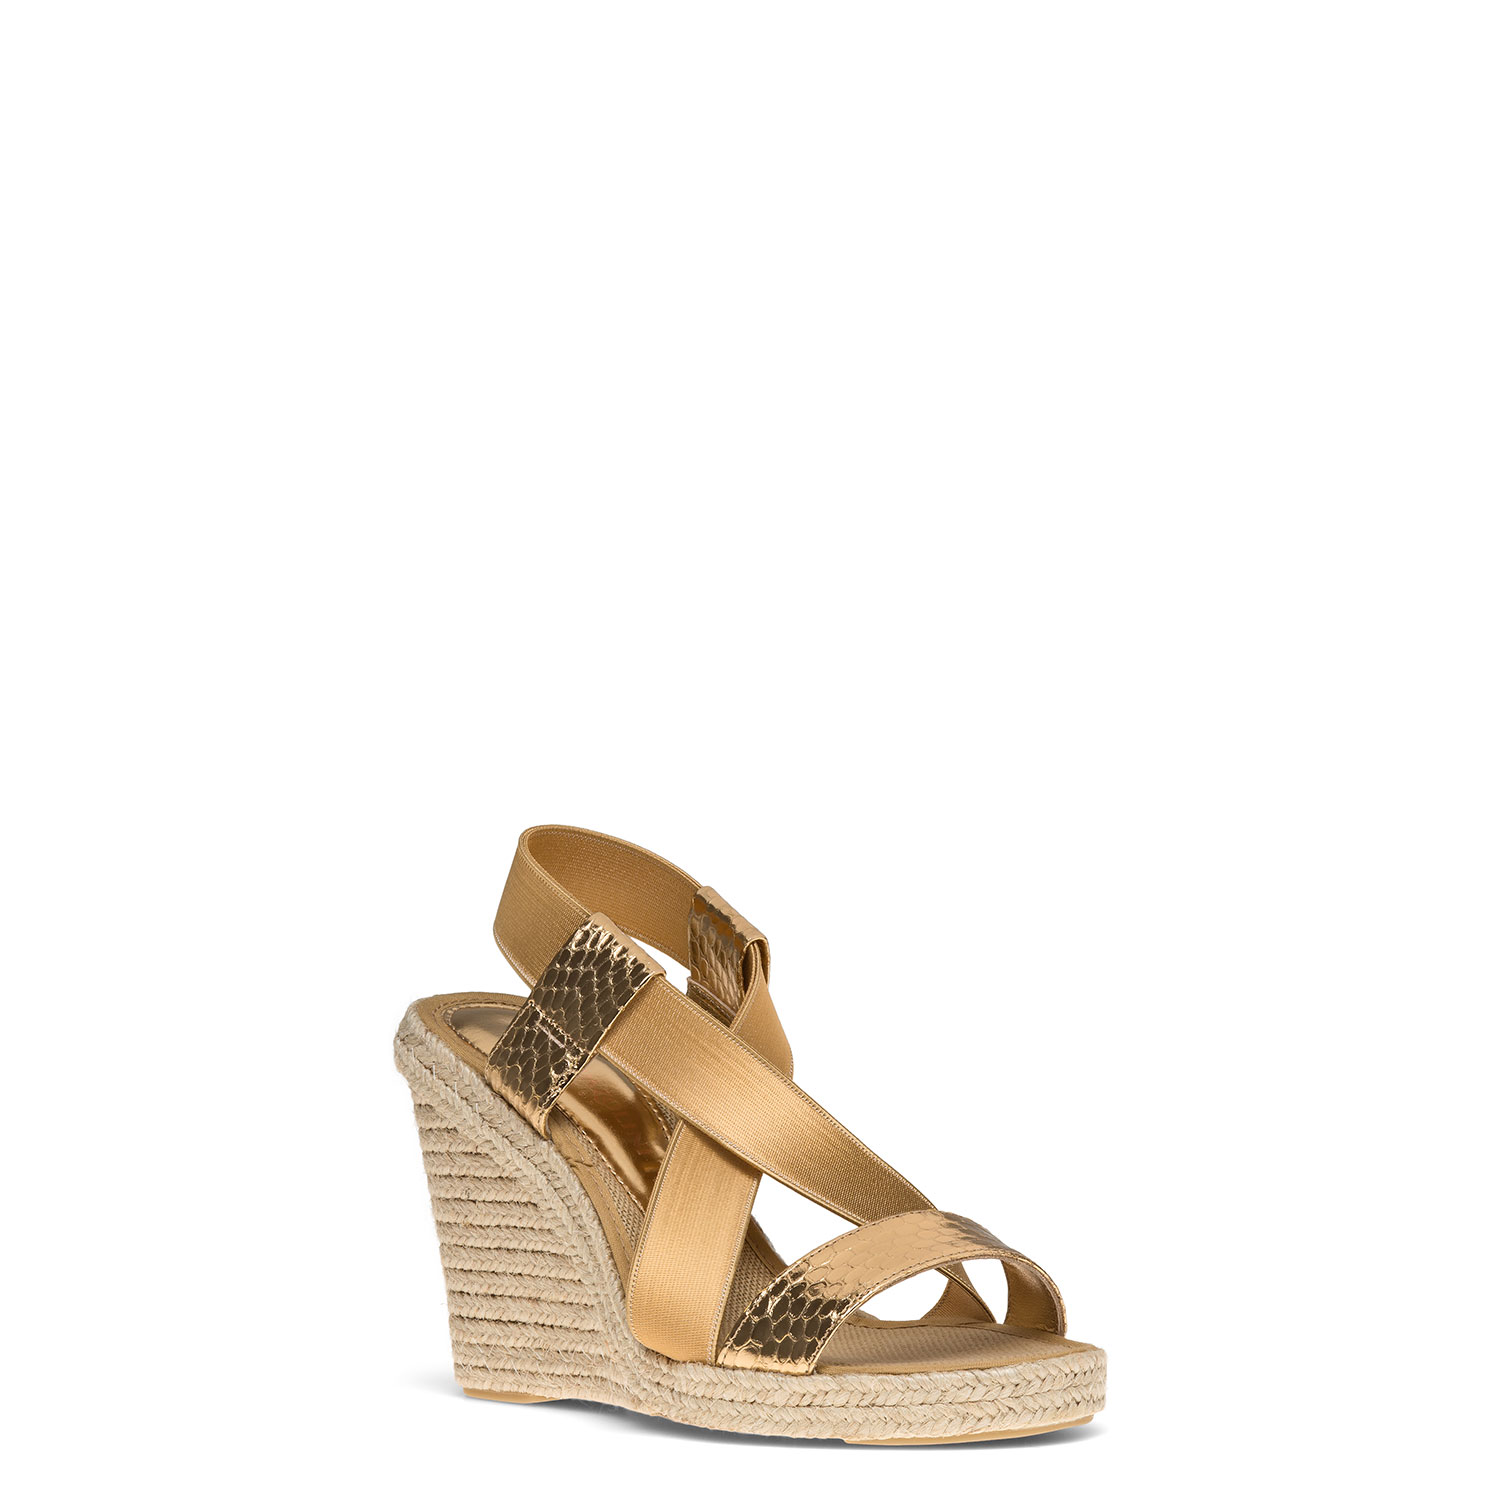 Women's sandals CARLO PAZOLINI CT-X2000-7